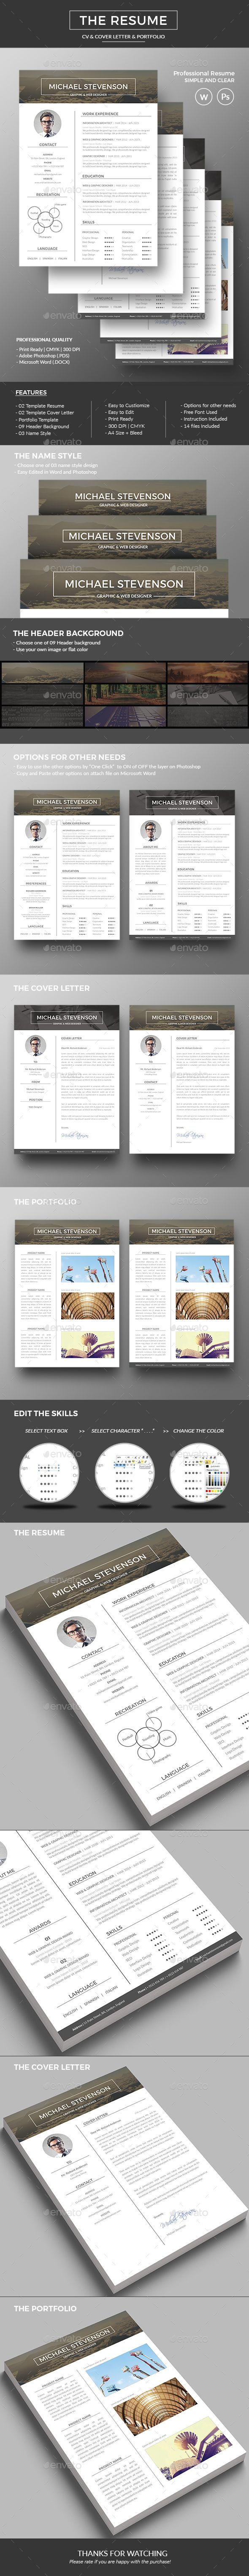 9 Best Cool Cv Images On Pinterest Resume Ideas Cool Resumes